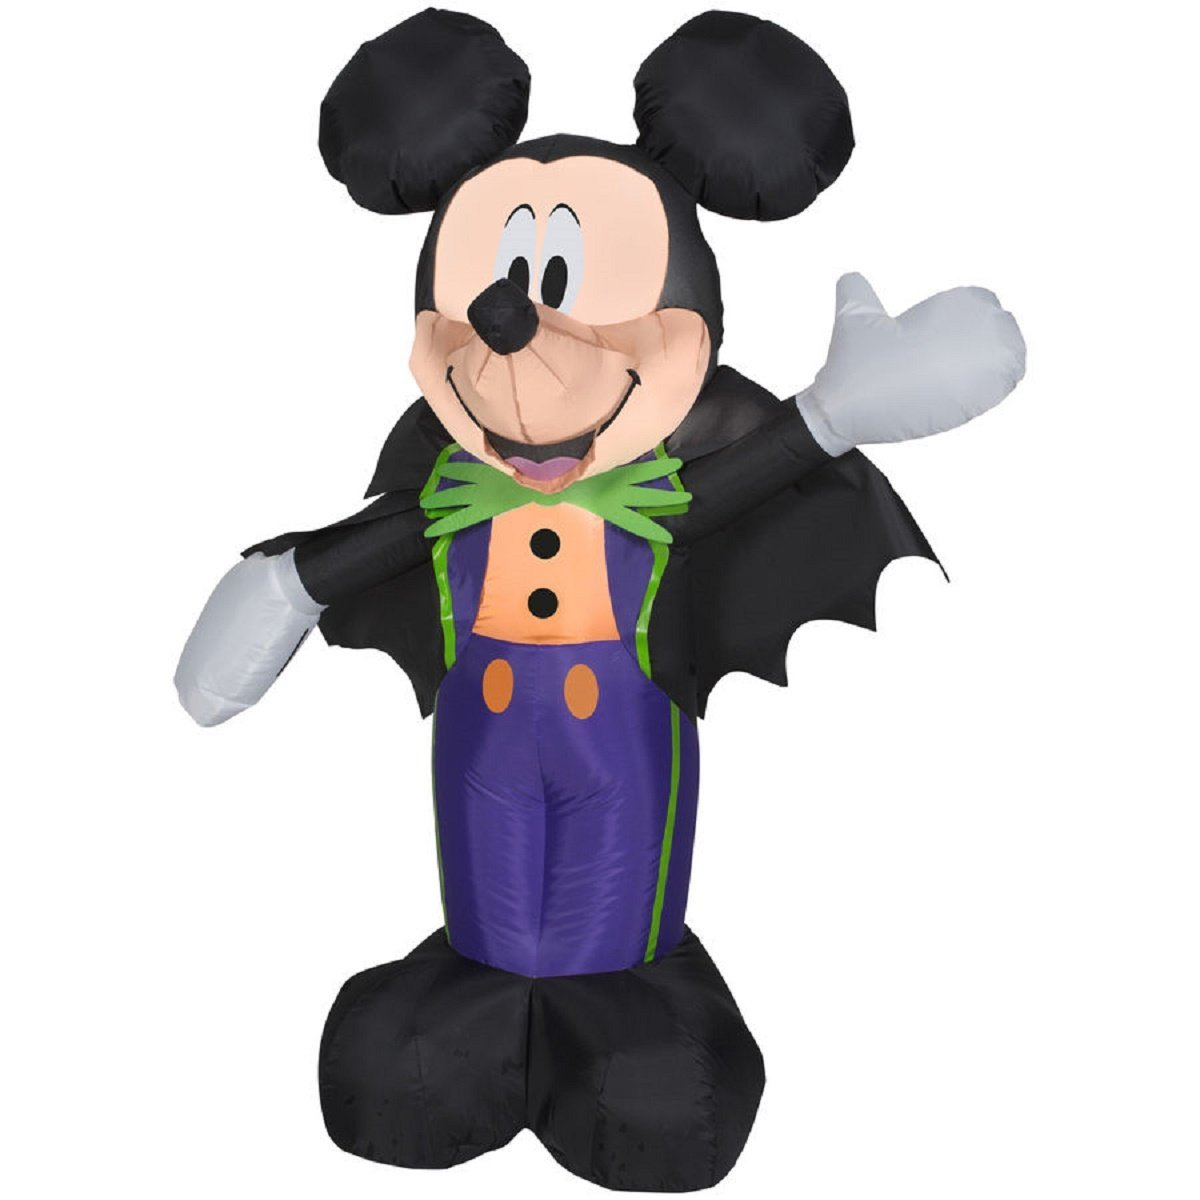 Disney Halloween Decorations For Your Home